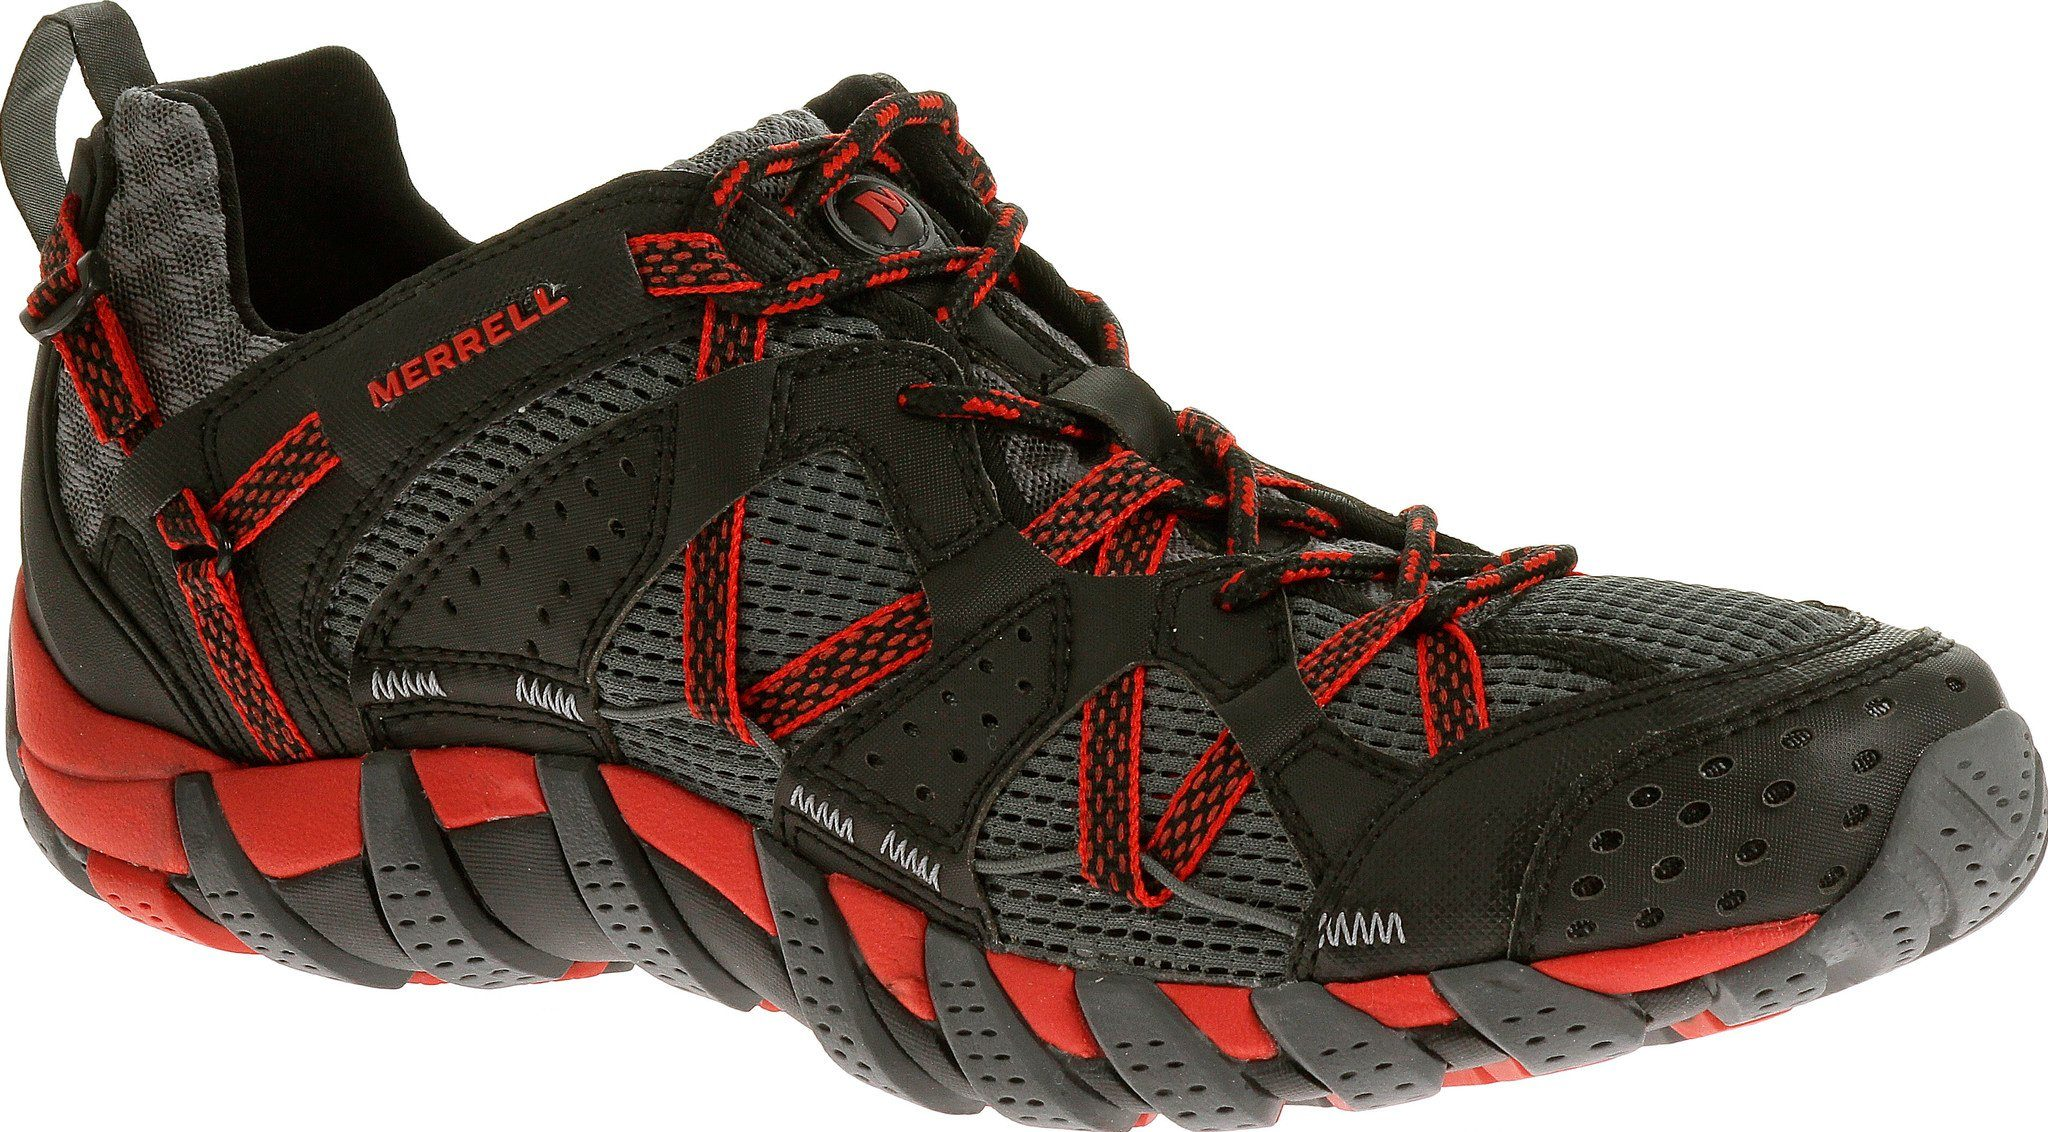 Merrell Kletterschuh Waterpro Maipo Shoes Men  schwarz